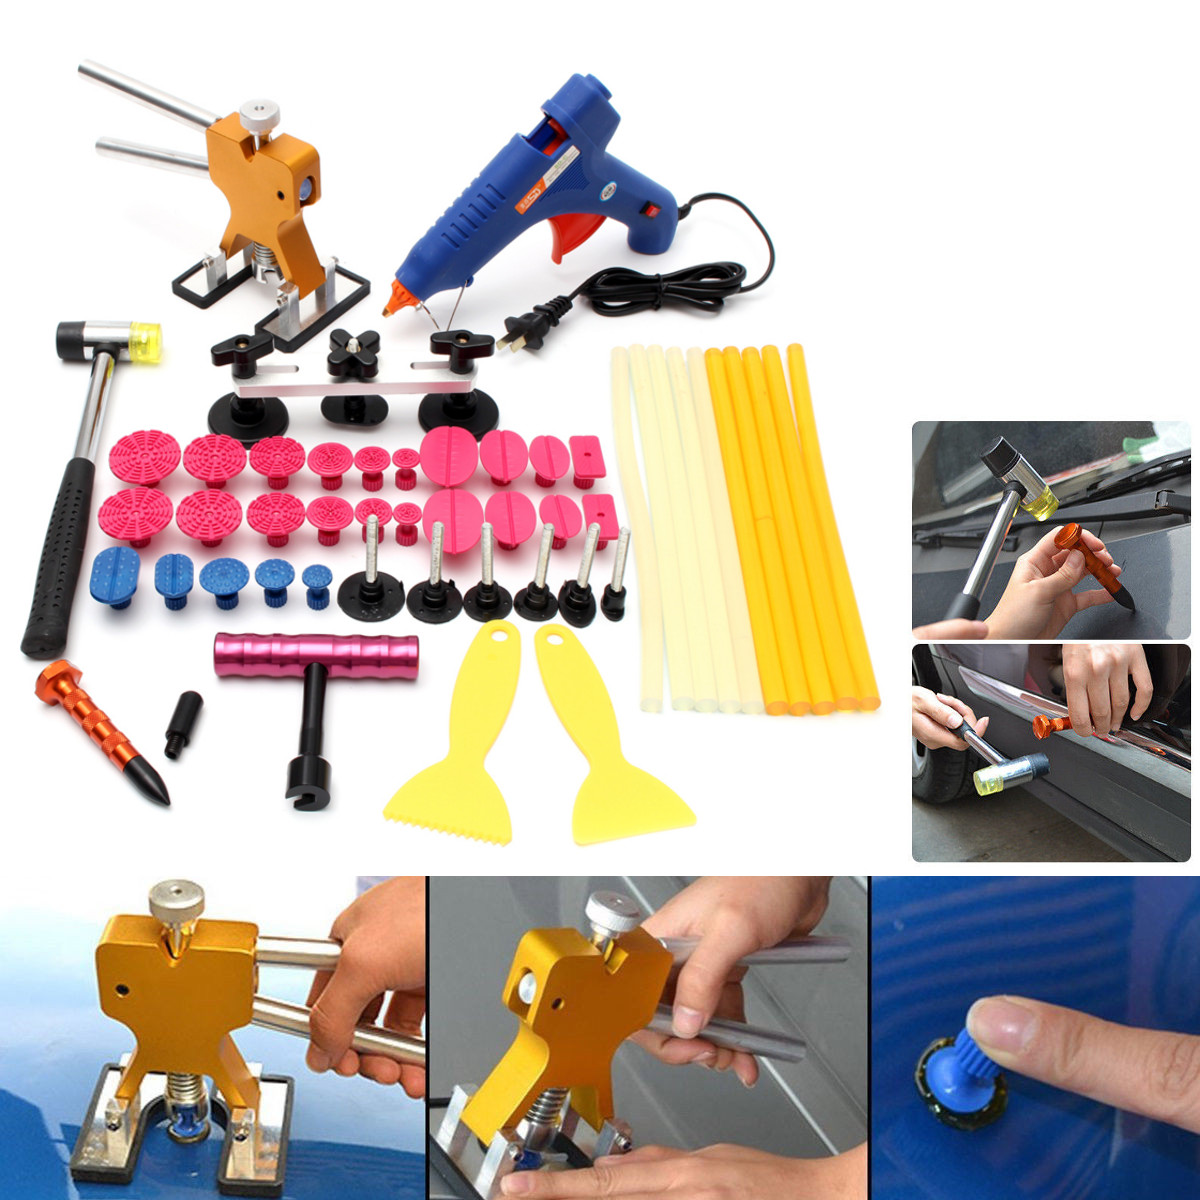 PDR Tools Paintless Dent Repair Removal Tools Rubber Hammer Dent Lifter Glue Gun Glue Sticks Kit